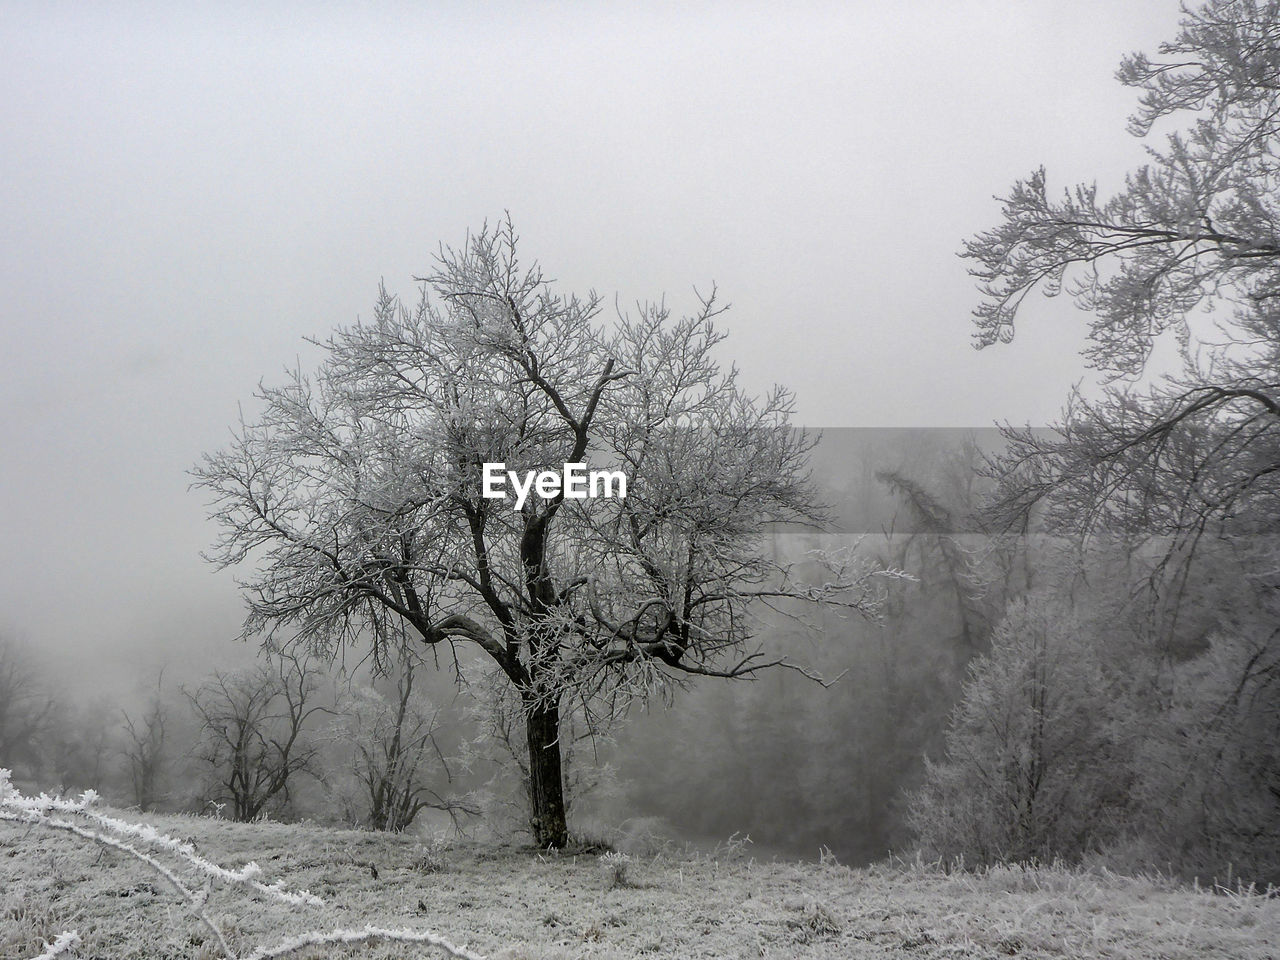 tree, plant, fog, beauty in nature, bare tree, tranquility, tranquil scene, cold temperature, environment, winter, land, scenics - nature, landscape, no people, nature, non-urban scene, sky, snow, field, outdoors, isolated, hazy